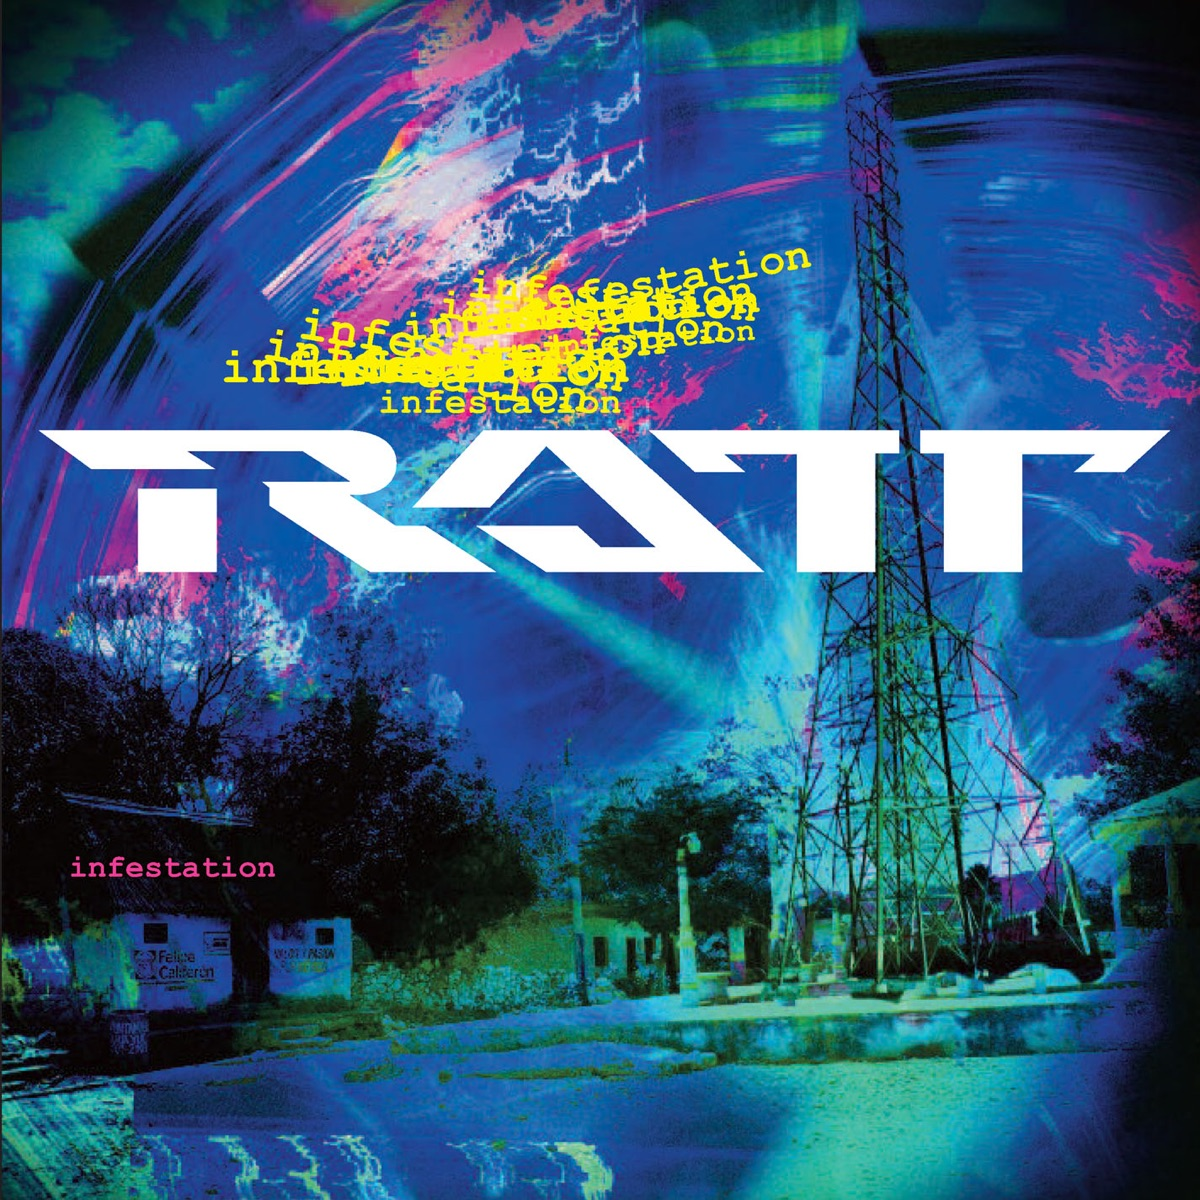 Infestation Special Edition Ratt CD cover